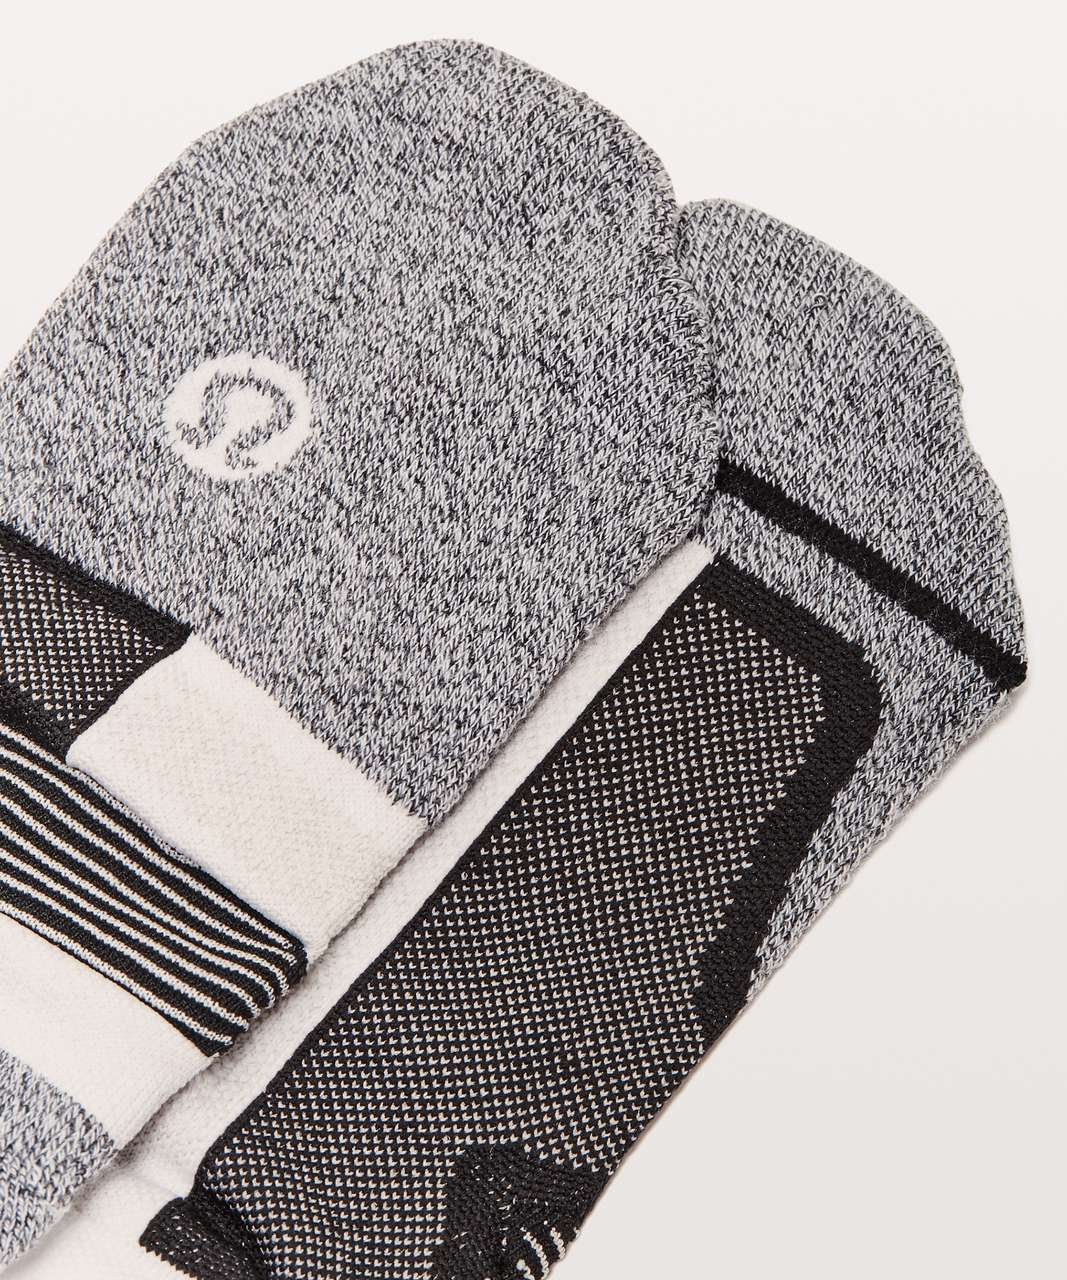 Lululemon Speed Sock *Silver - Black / White (First Release)